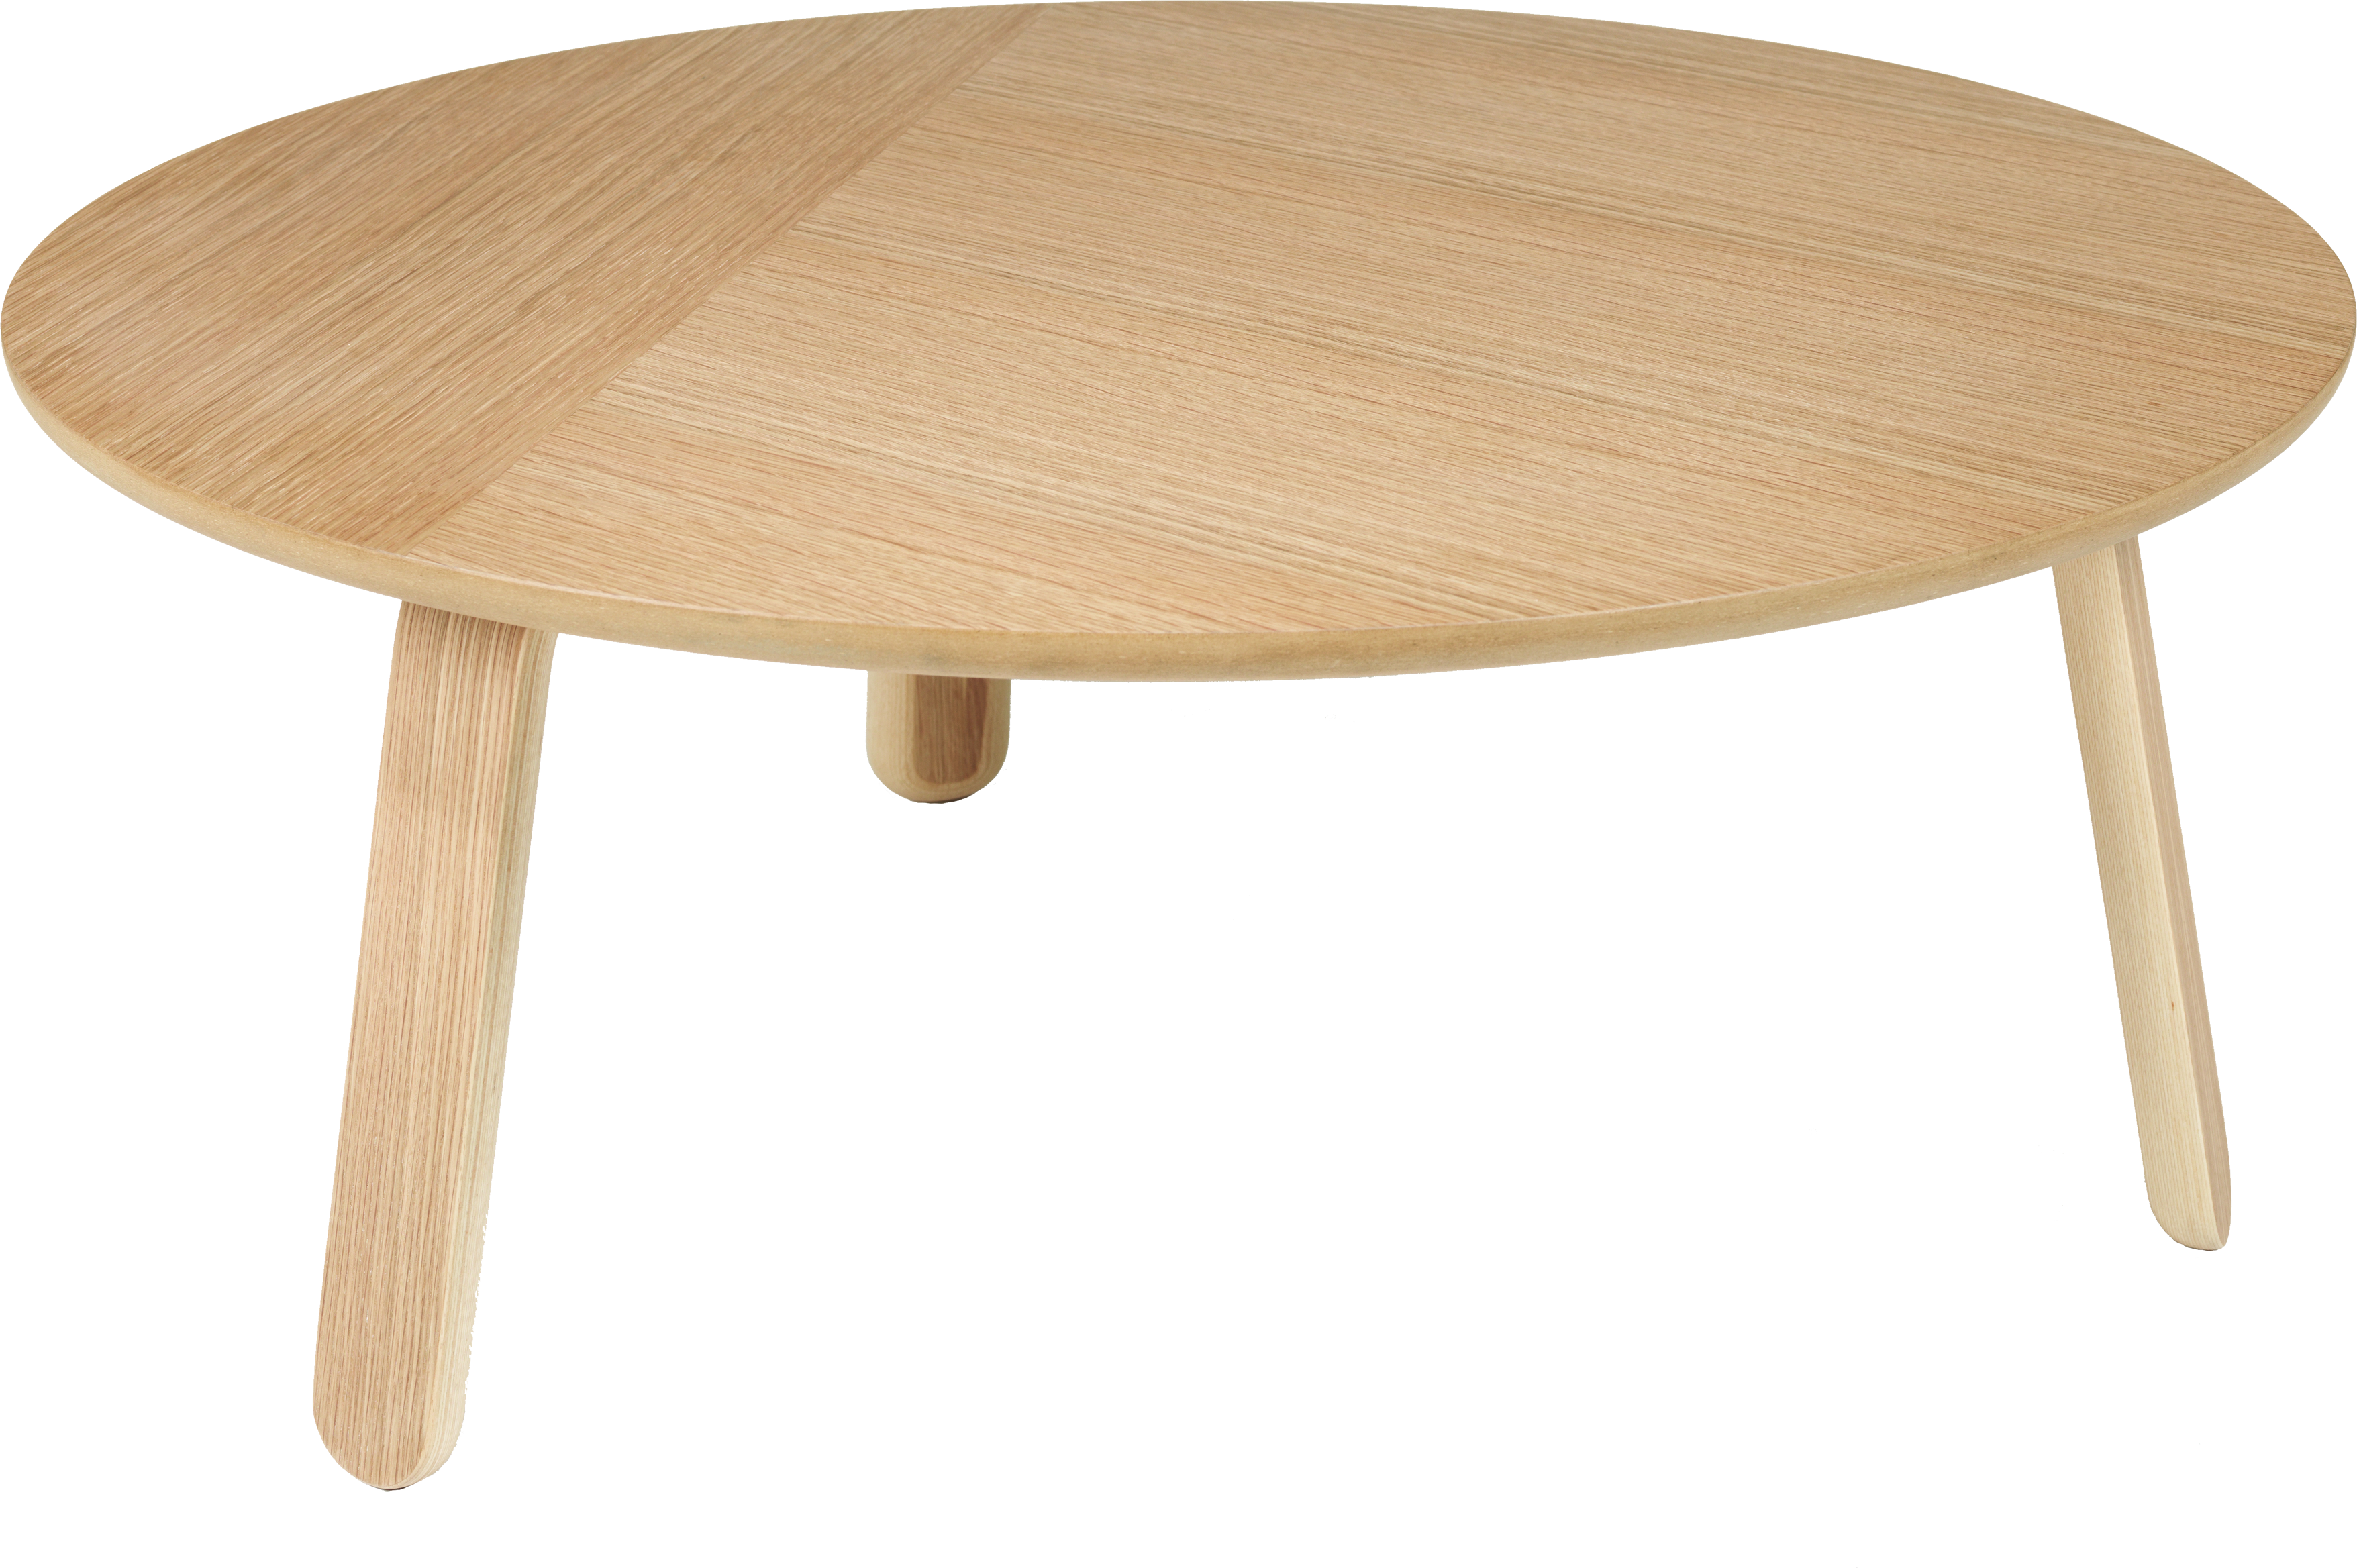 Table transparent png. Wooden image